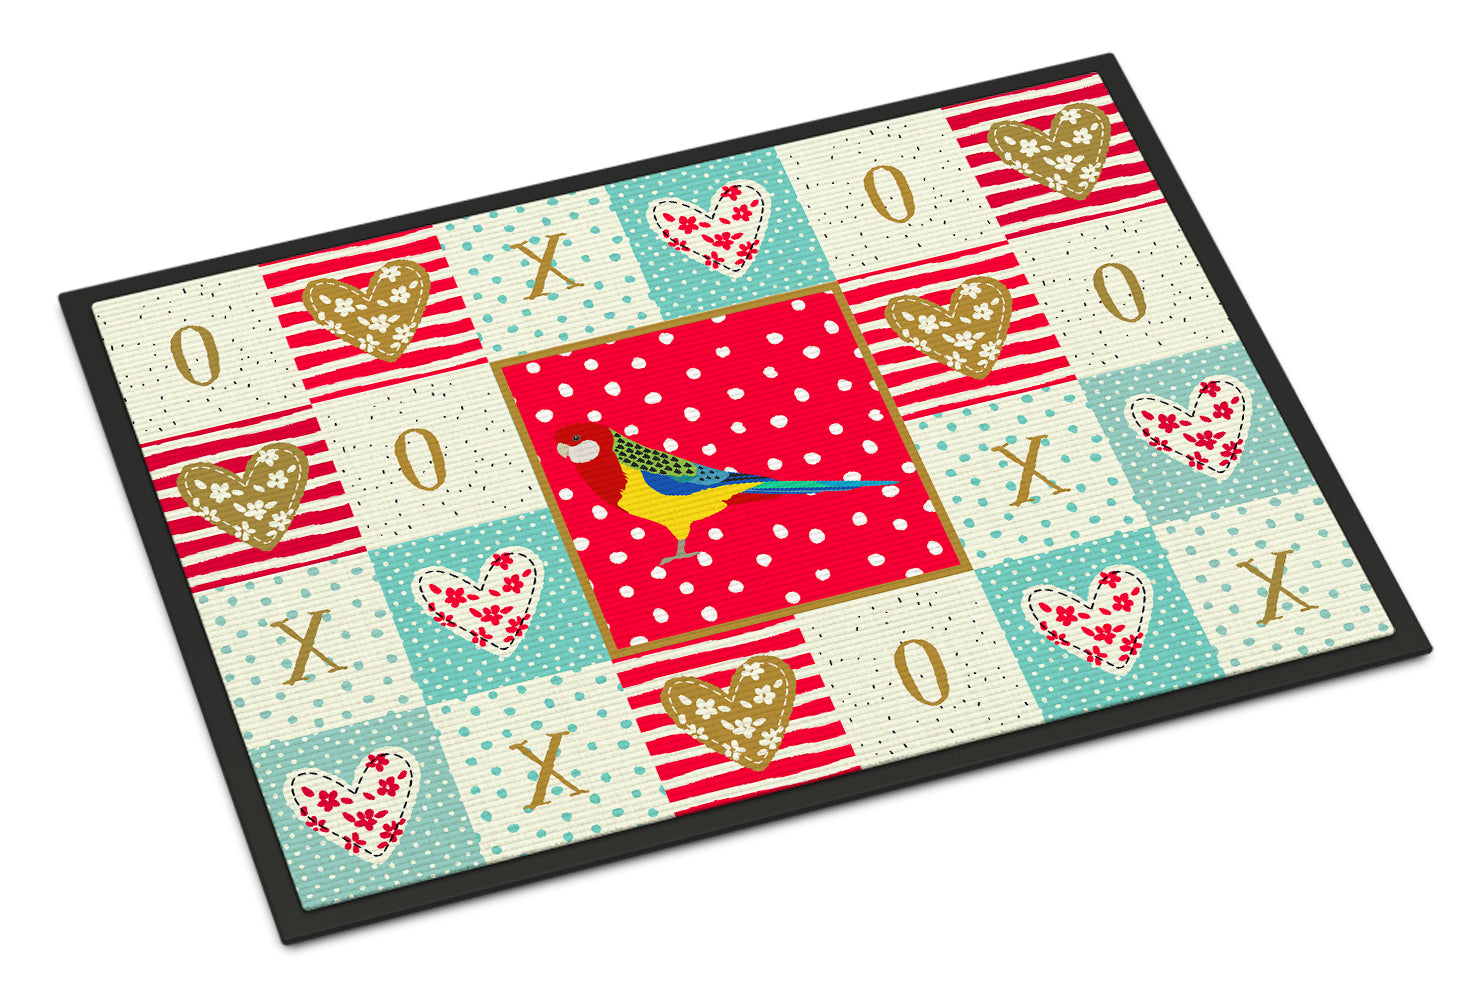 Rosella Love Indoor or Outdoor Mat 18x27 CK5526MAT by Caroline's Treasures